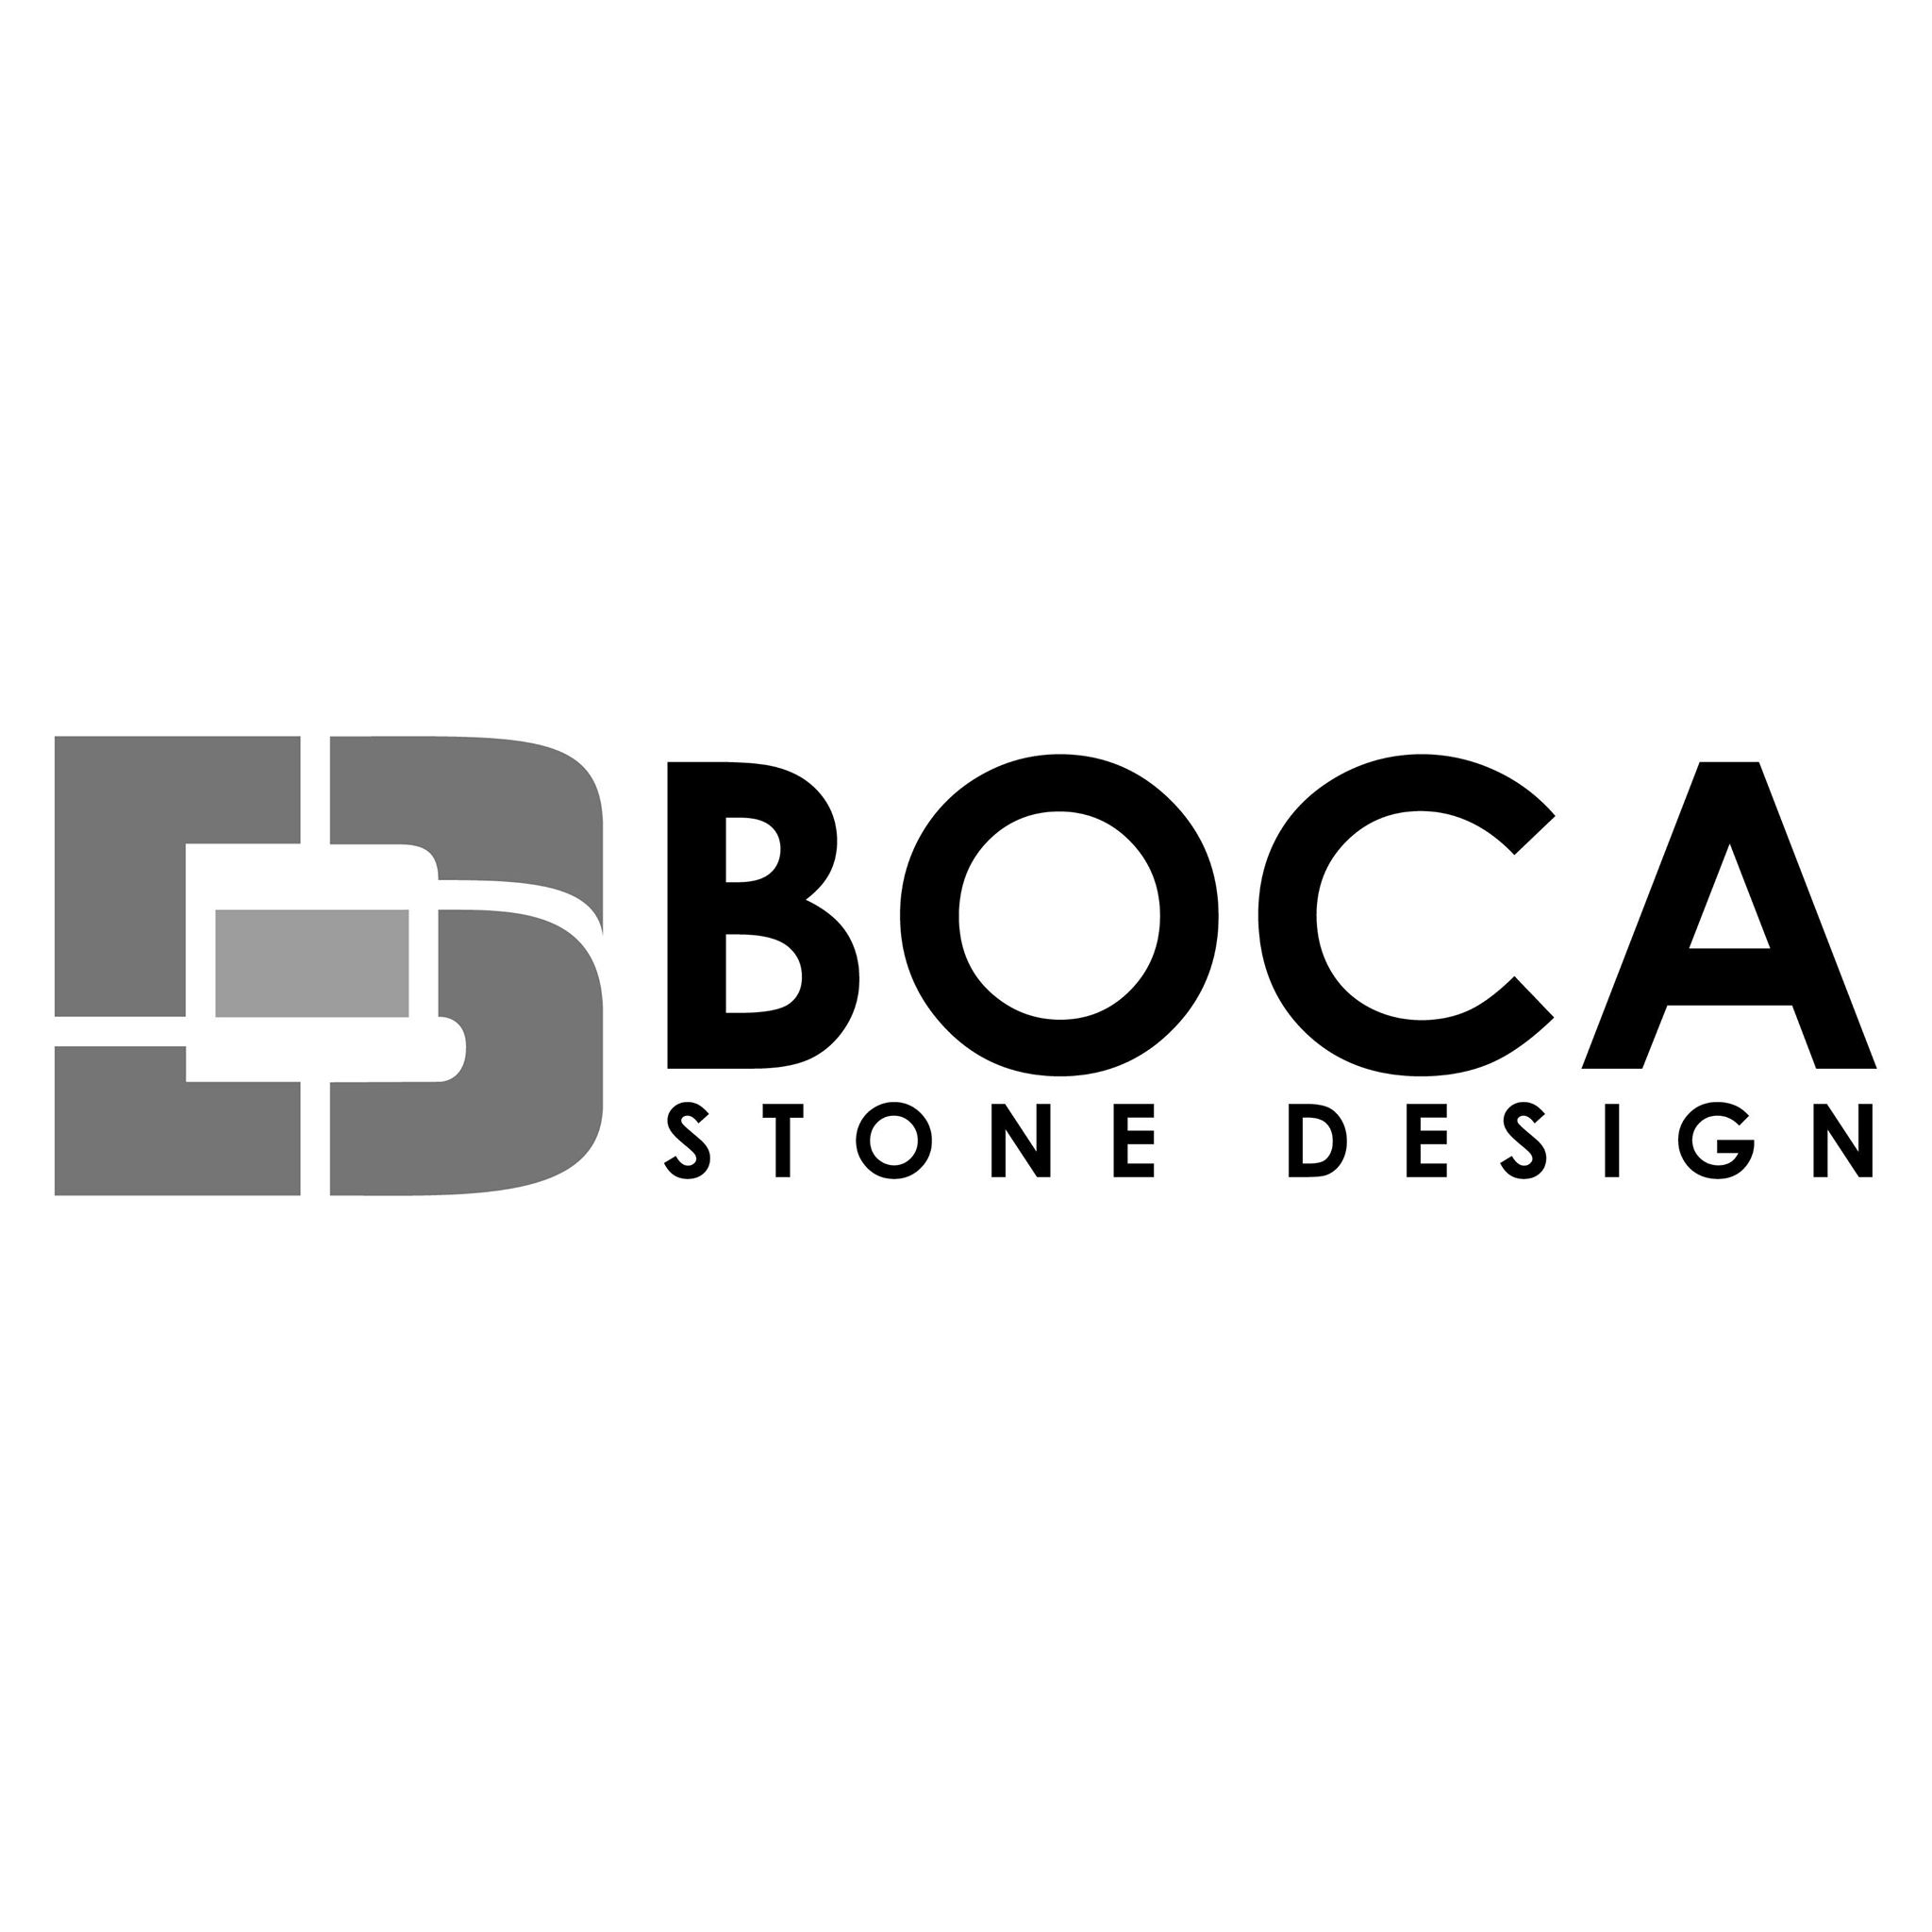 Boca Stone Design 1200 Clint Moore Road Suite 14 Boca Raton Fl Counter Tops Mapquest